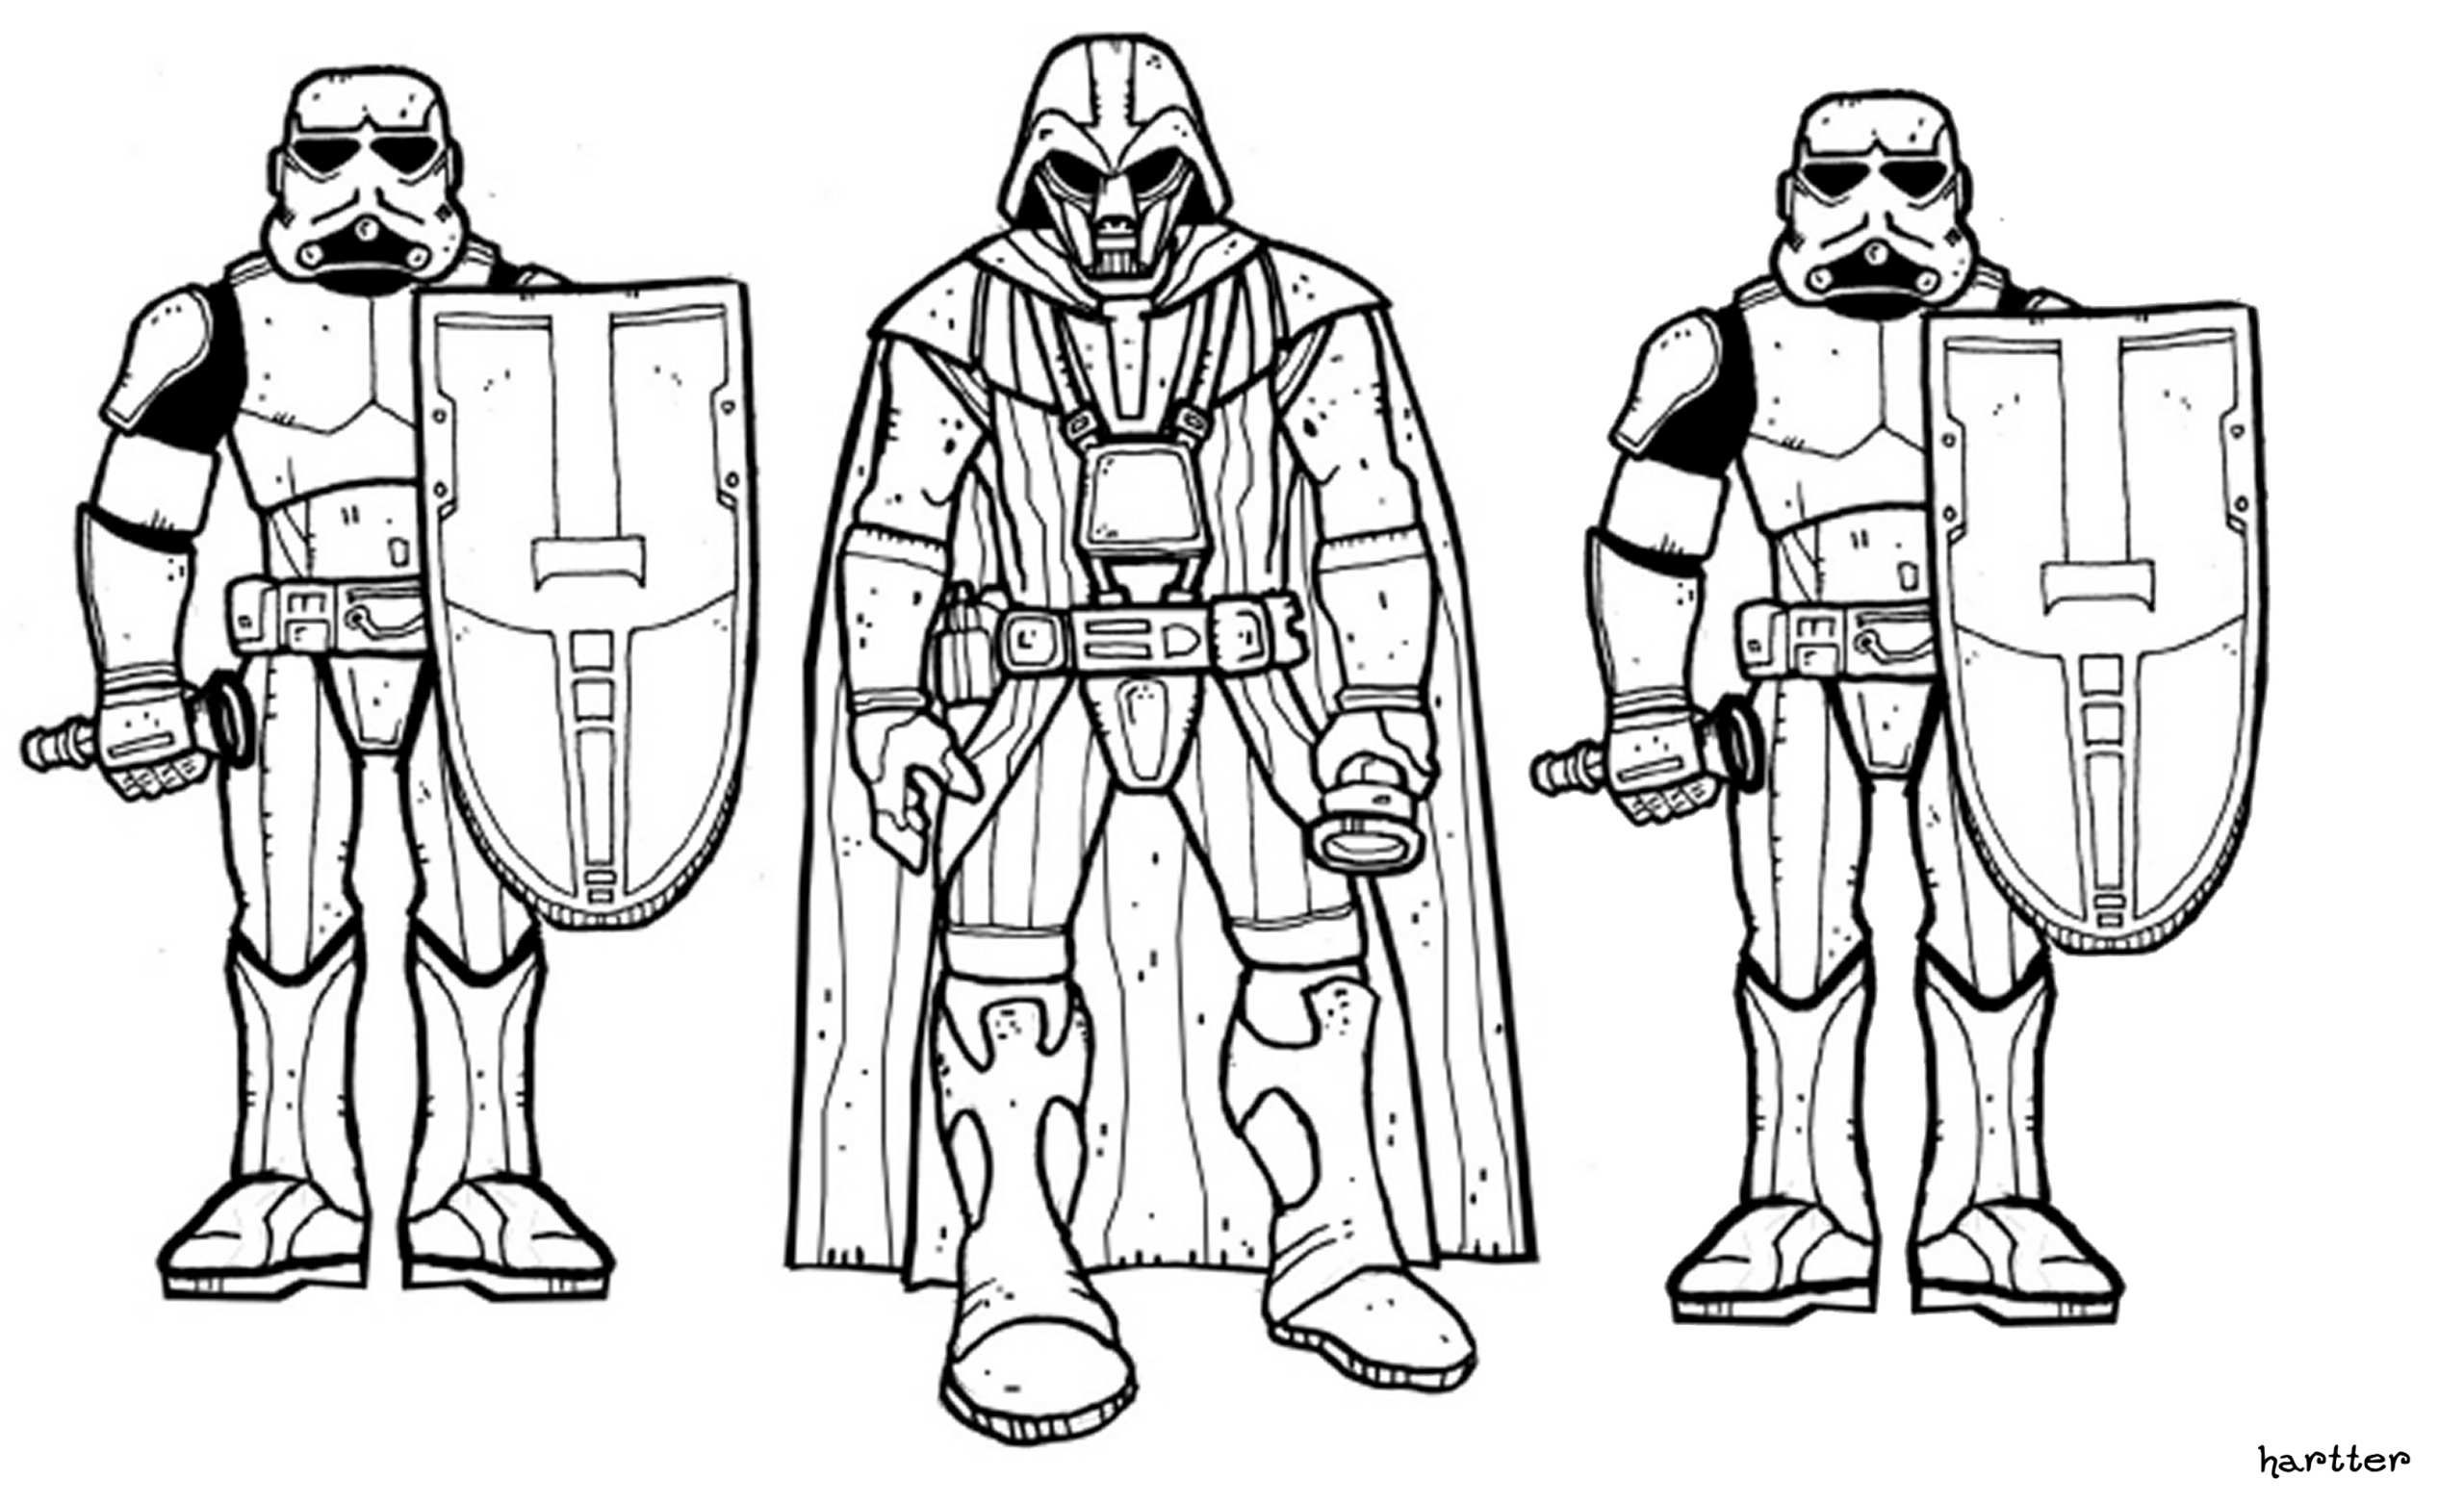 Free coloring pages of star wars - Free Coloring Pages Star Wars Free Coloring Pages Star Wars Star Wars Coloring Pages Boba